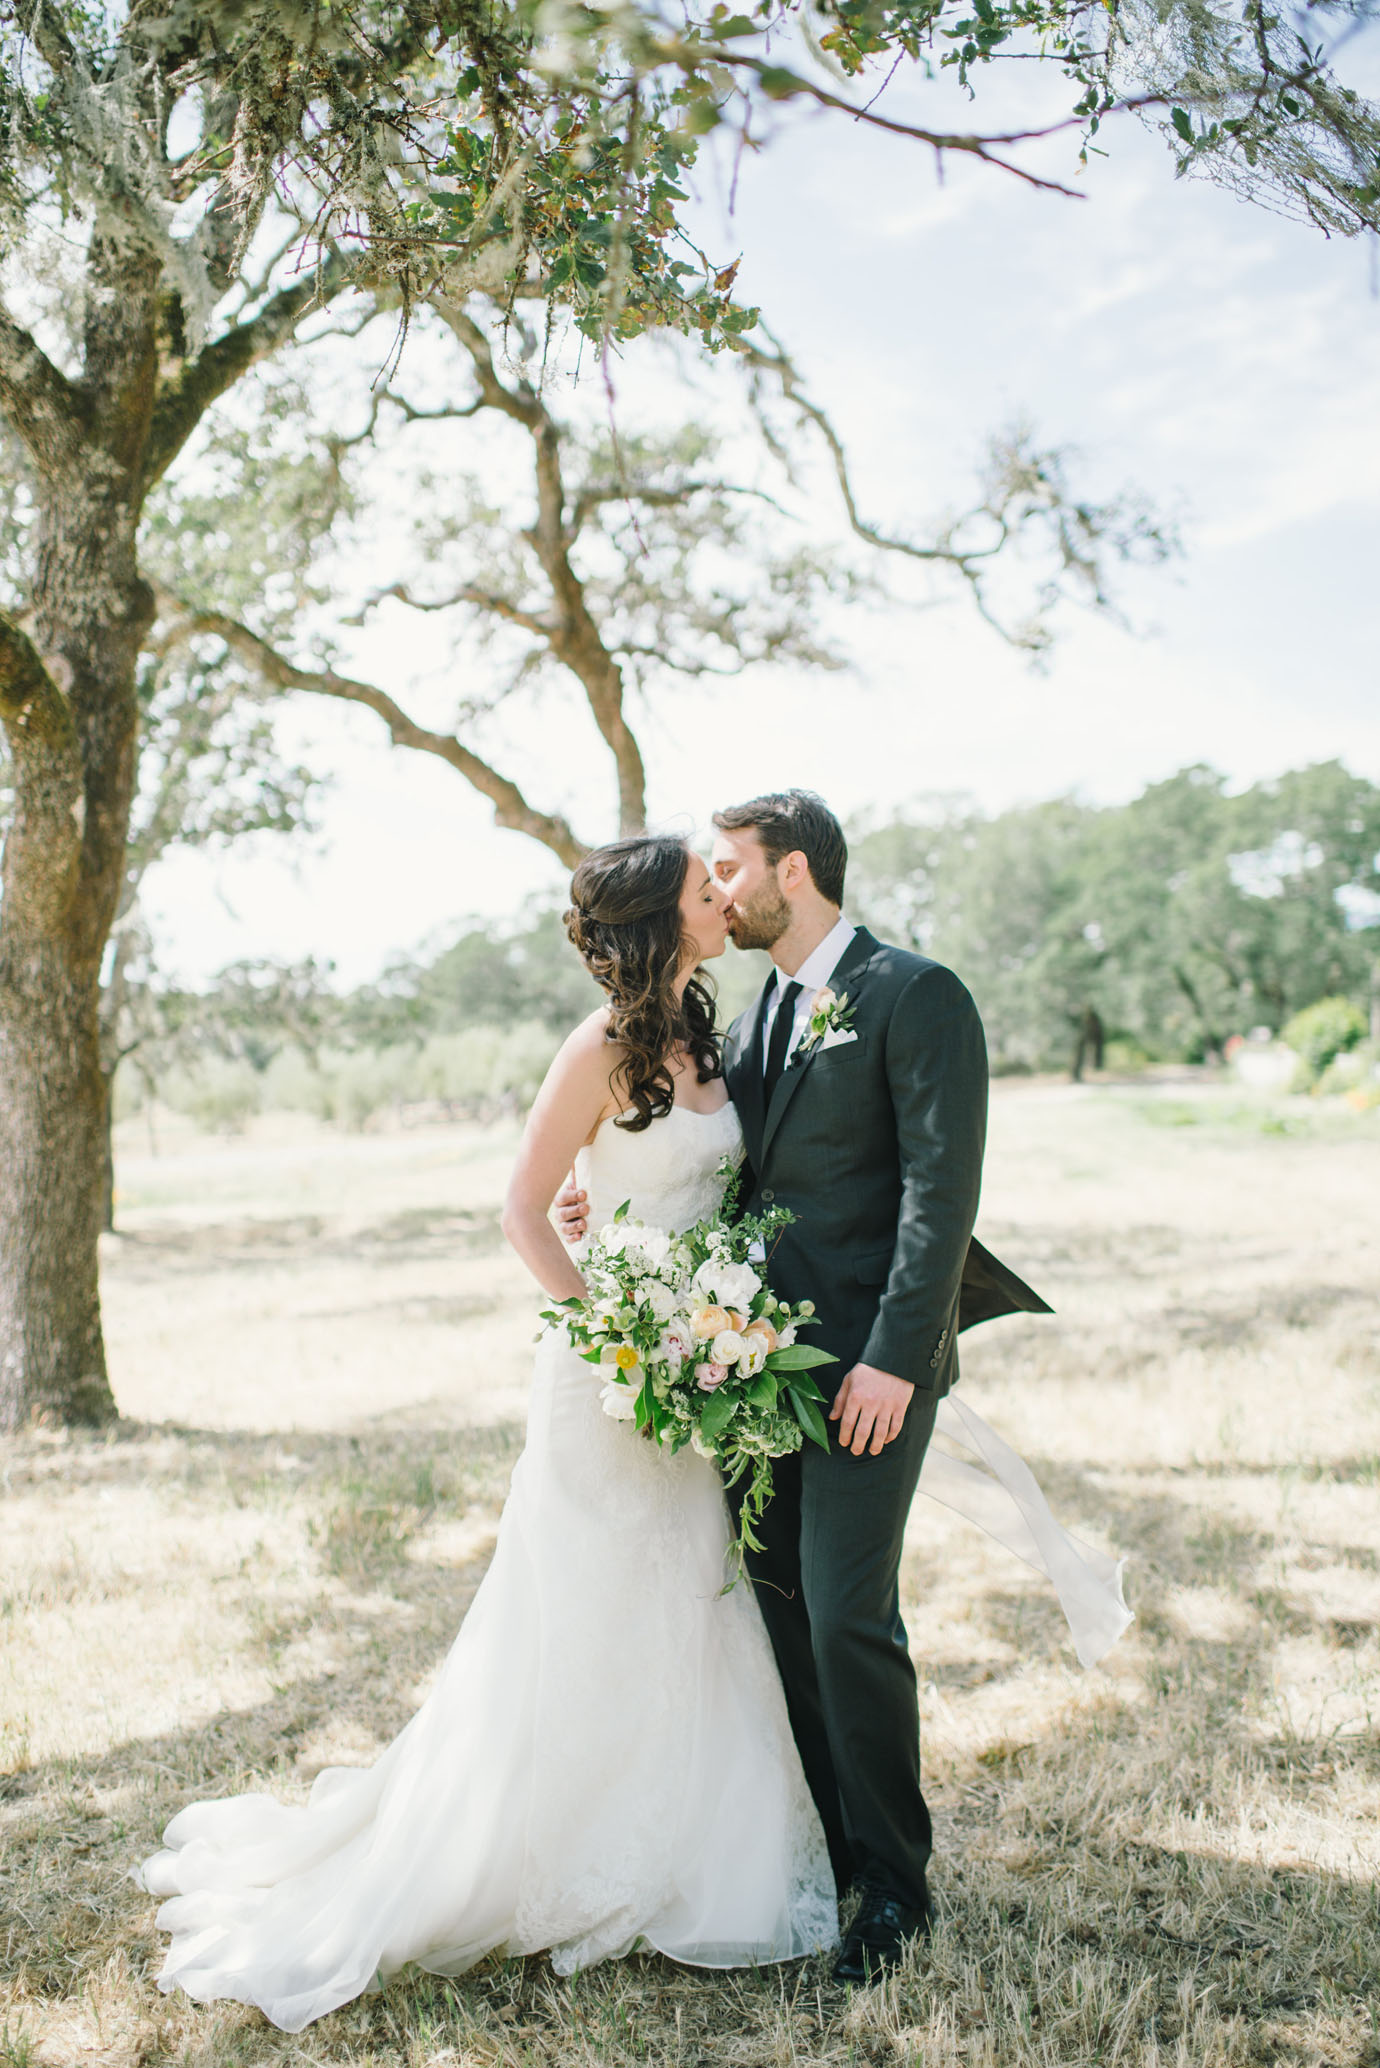 21-real-wedding-at-beltane-ranch067